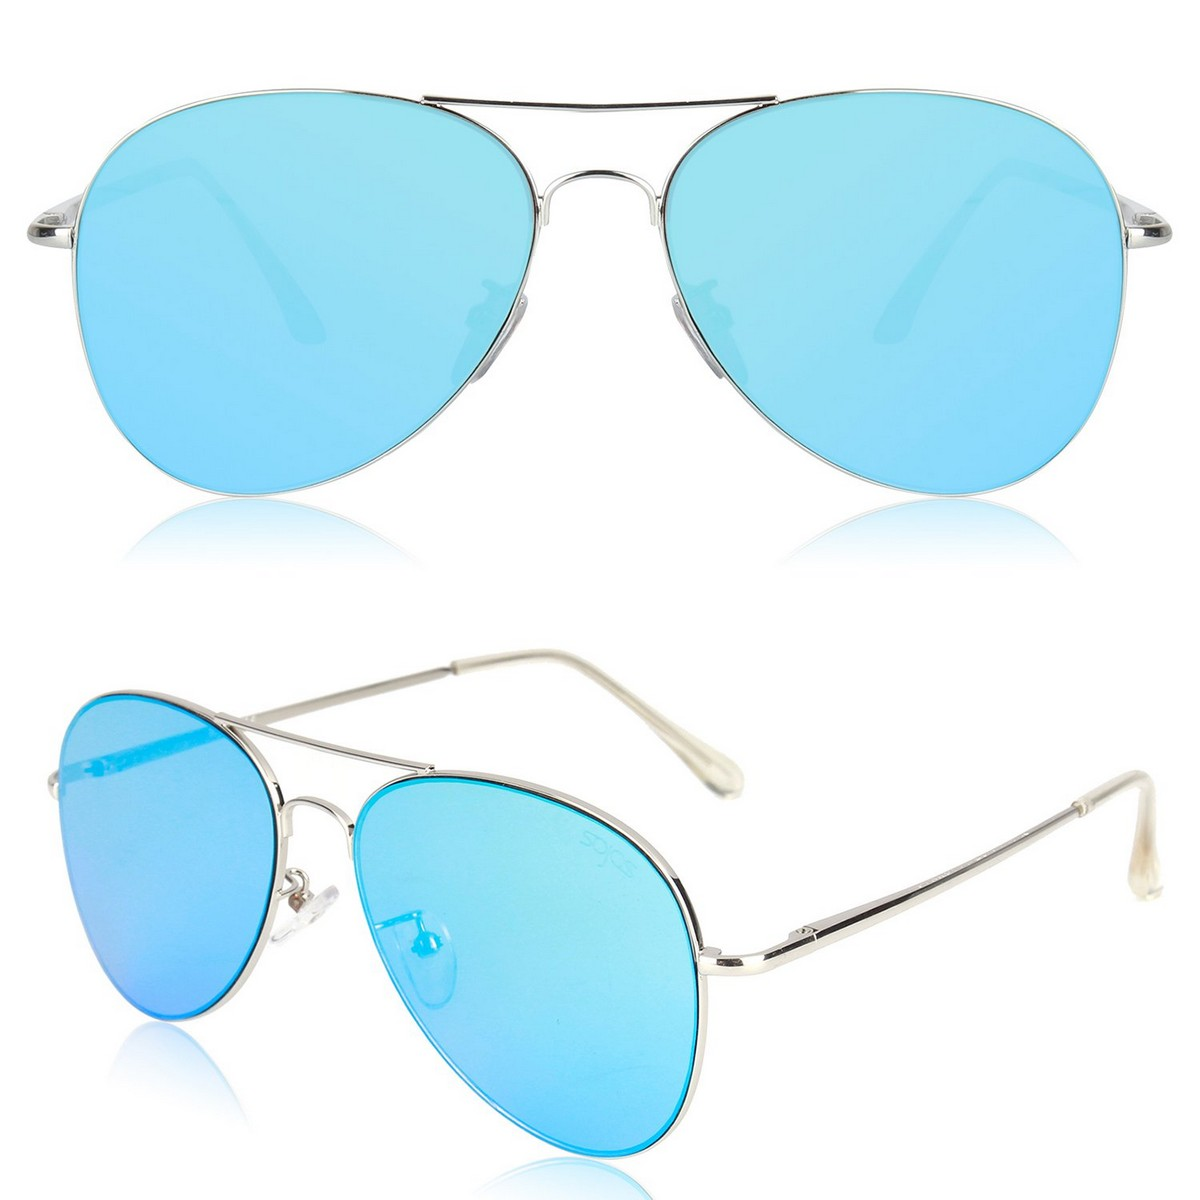 Blue Mirror Aviator Sunglasses with Spring